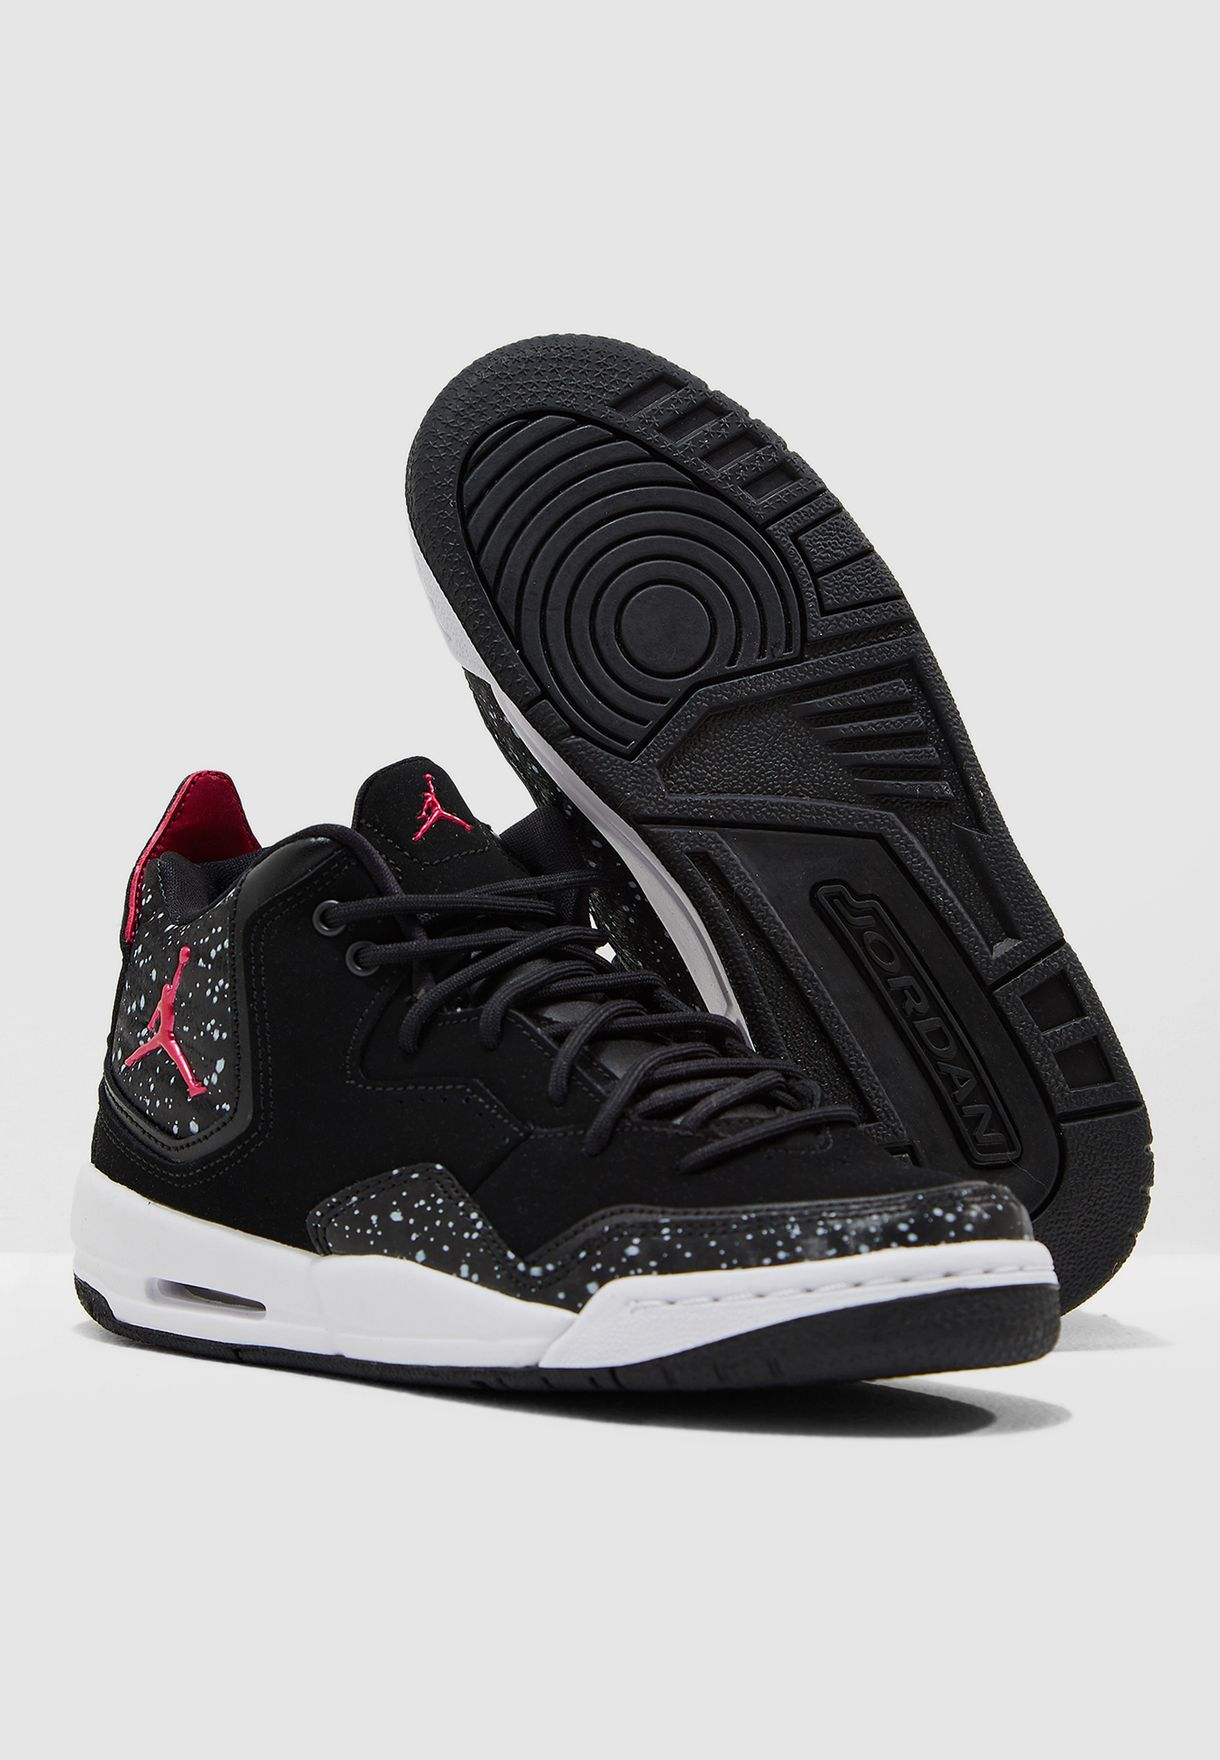 9b900daed29 Shop Nike black Youth Jordan Courtside 23 AR1001-016 for Kids in ...